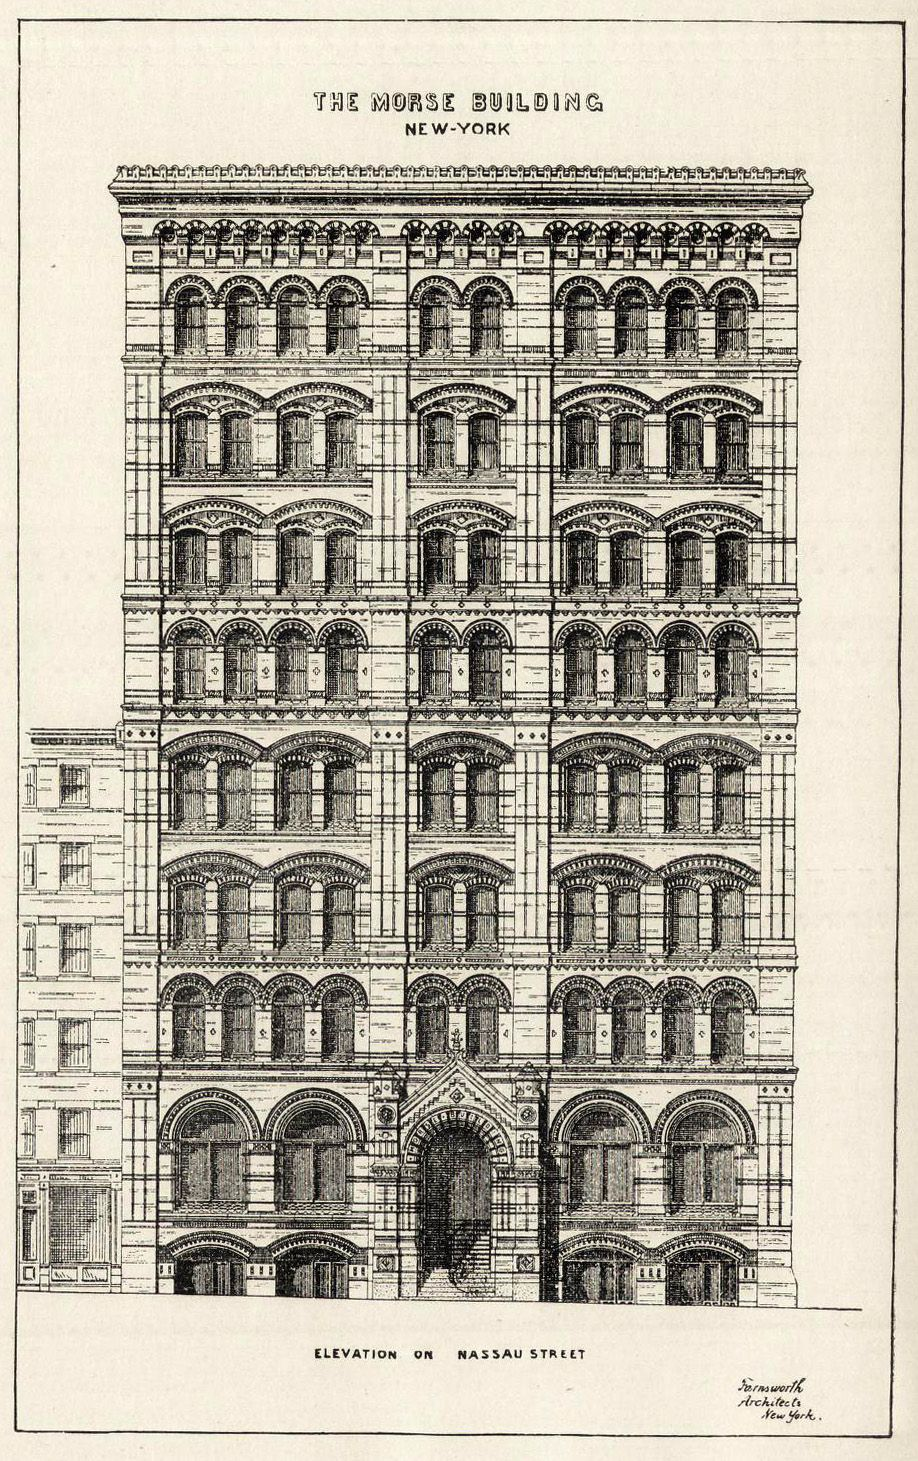 Architectural Drawings Of Buildings elevation of the morse building, new york city | desenhos